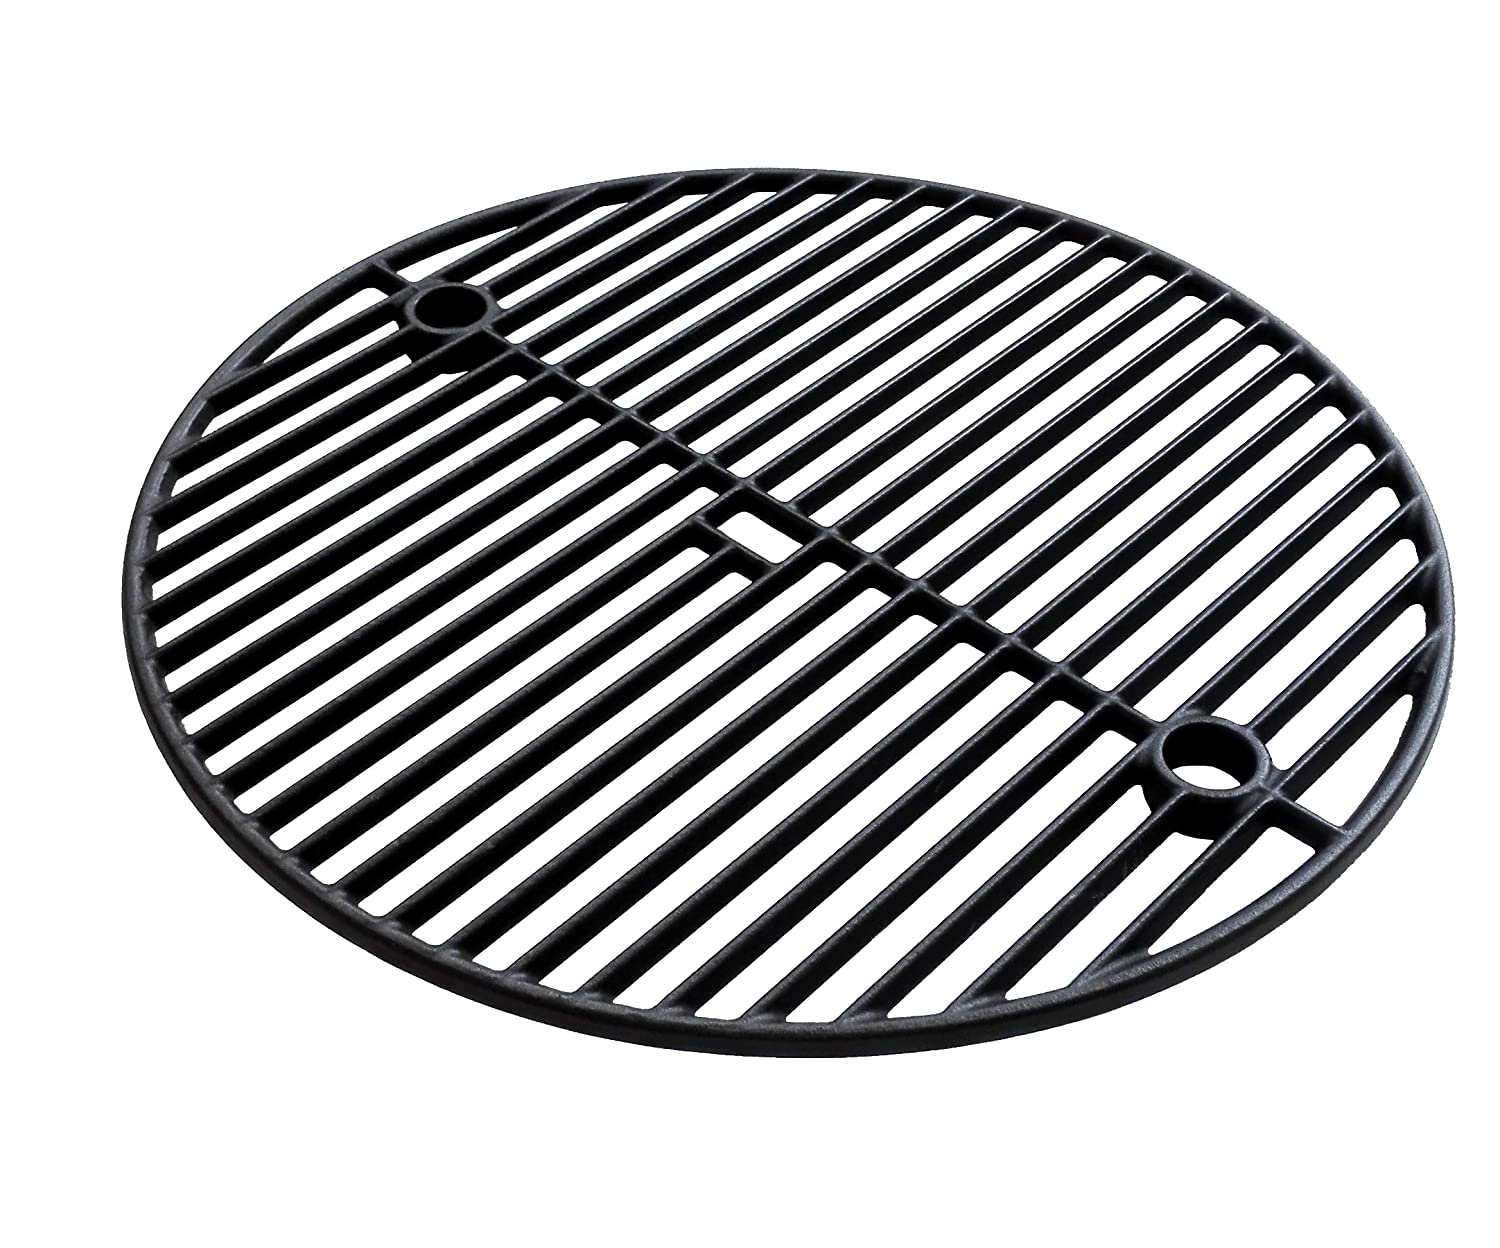 TWO LEVEL Premium Cast Iron Cooking Grate 18-3/16 for Large Big Green Egg, Vision Grills VGKSS-CC2 Classic Kamado Charcoal Grill and Broil King Keg 4000